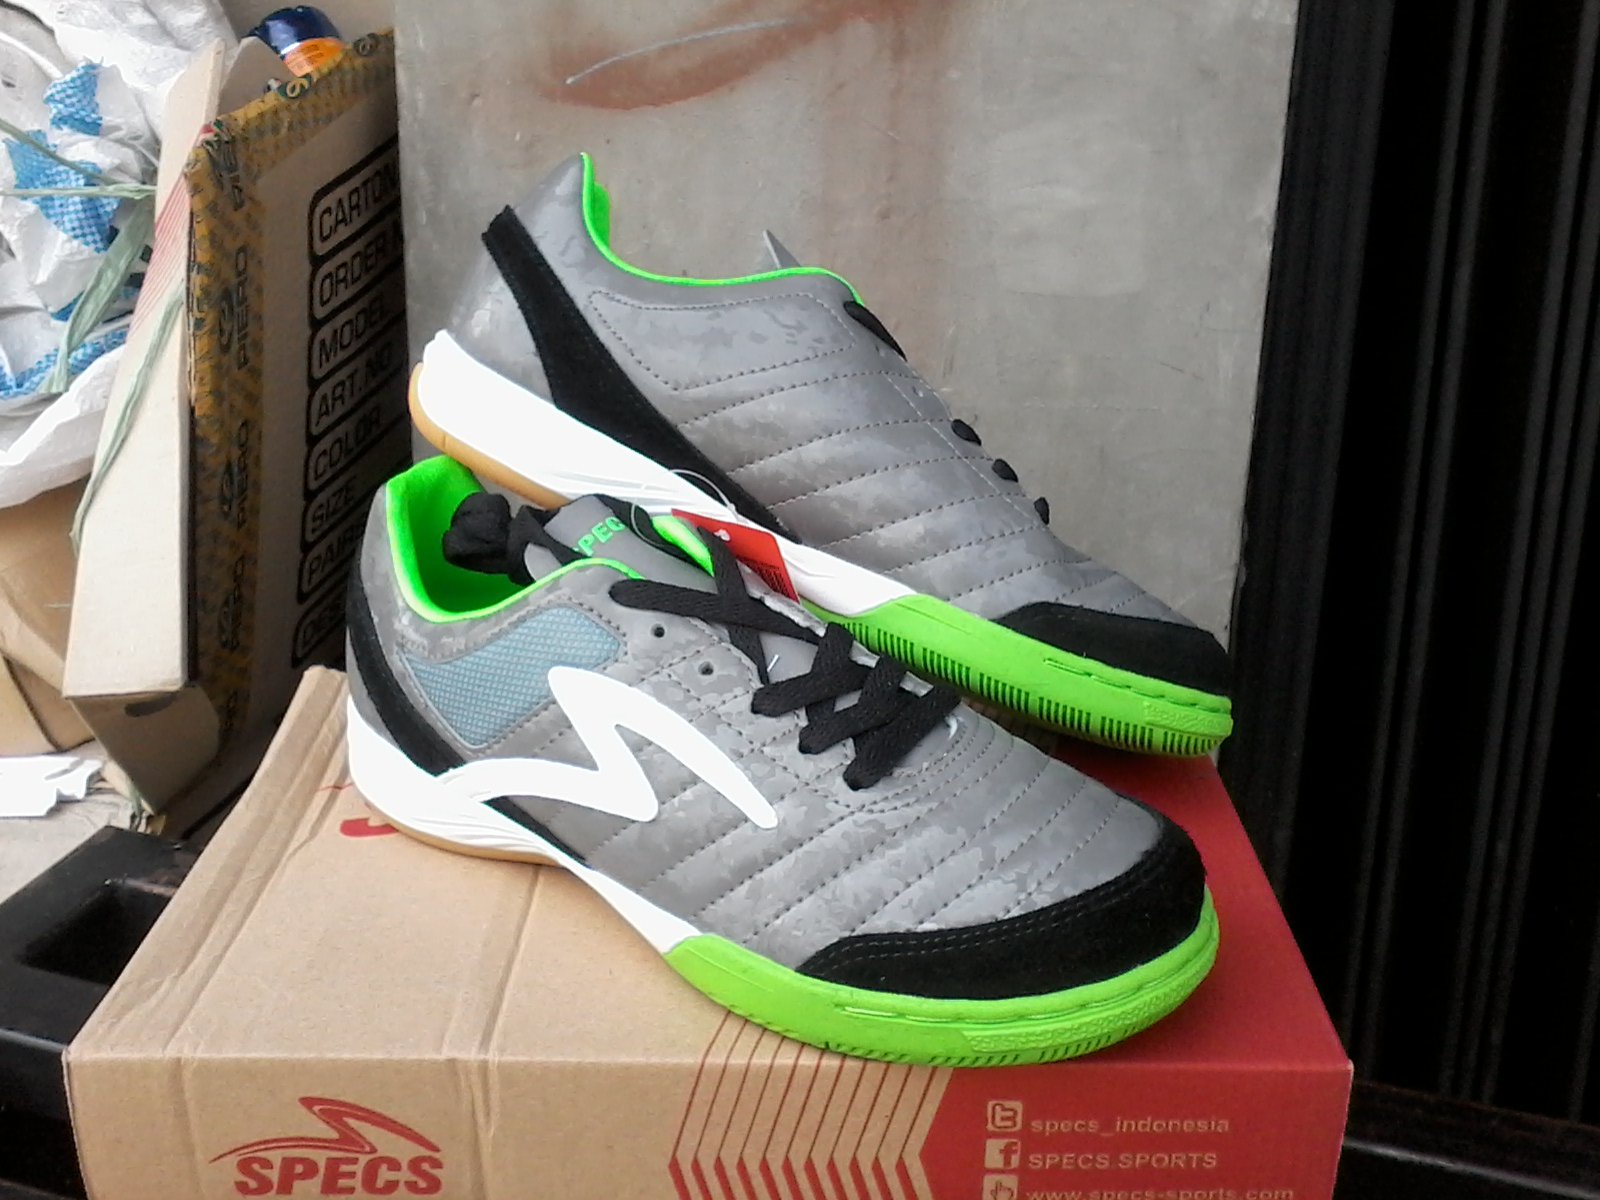 Jenis   Sepatu futsal street Ball Seri   Metasala Showtime Dark cool grey.  Ready Stock Size   39 d3427d7fec